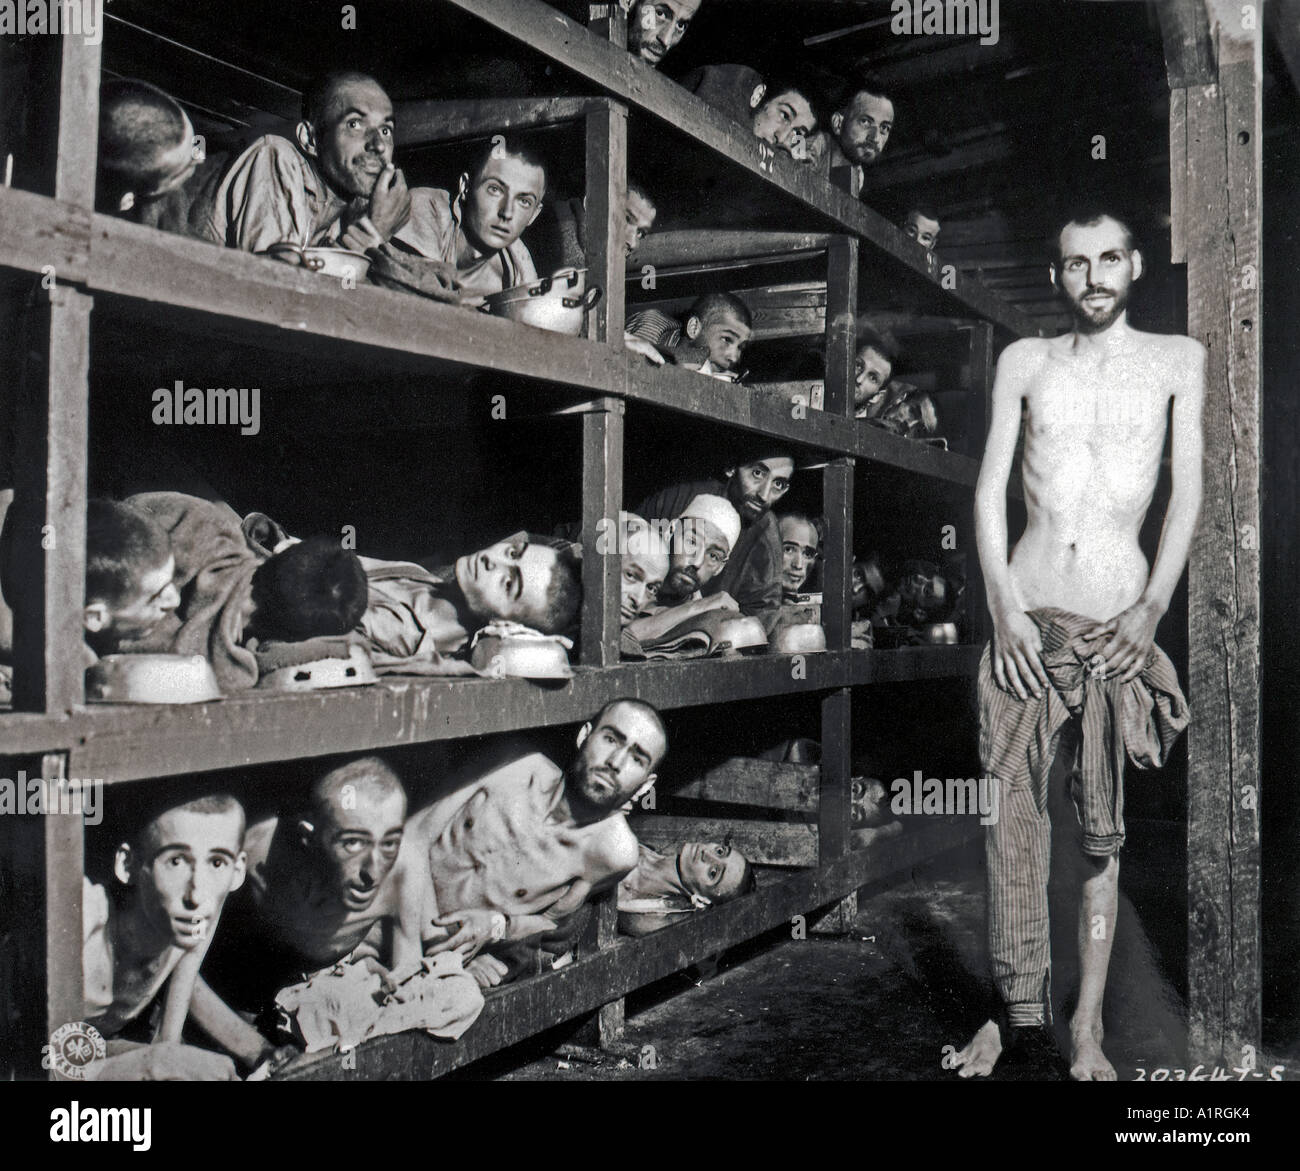 the description of the german holocaust from eli wiesel perspective Wiesel, who died on july 2 aged 87, emerged as the voice of holocaust survivors in part because his short memoir, night, was published at what, in retrospect, was the right time.